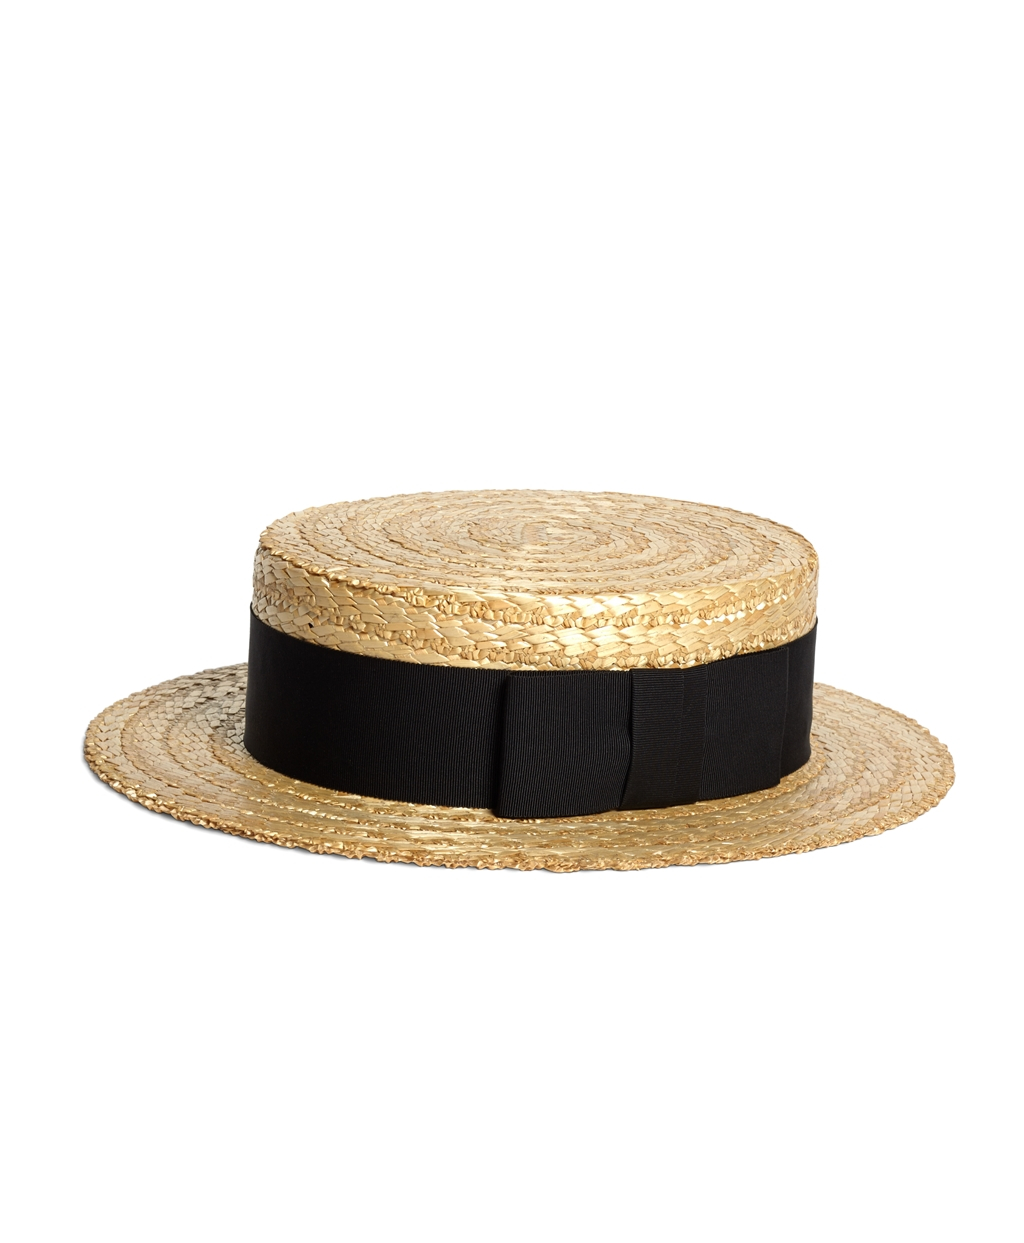 Brooks Brothers Lock Amp Co Straw Boater Hat With Black